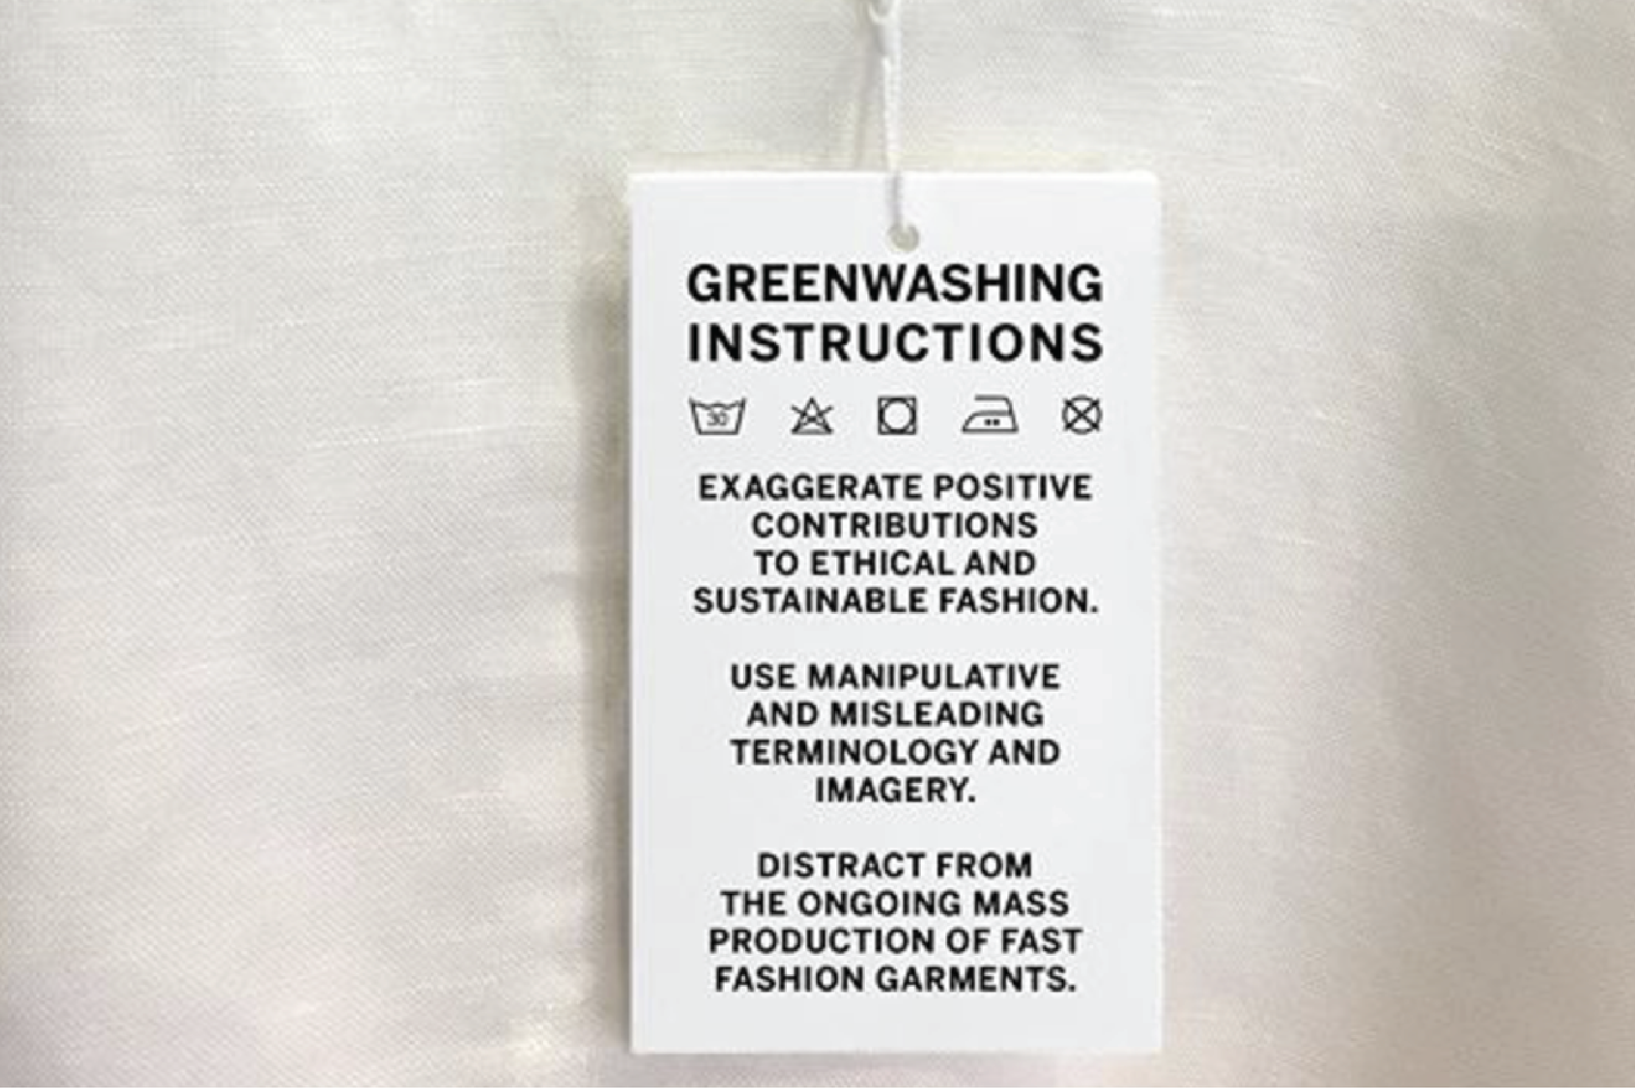 What is greenwashing, and how can we avoid being greenwashed?